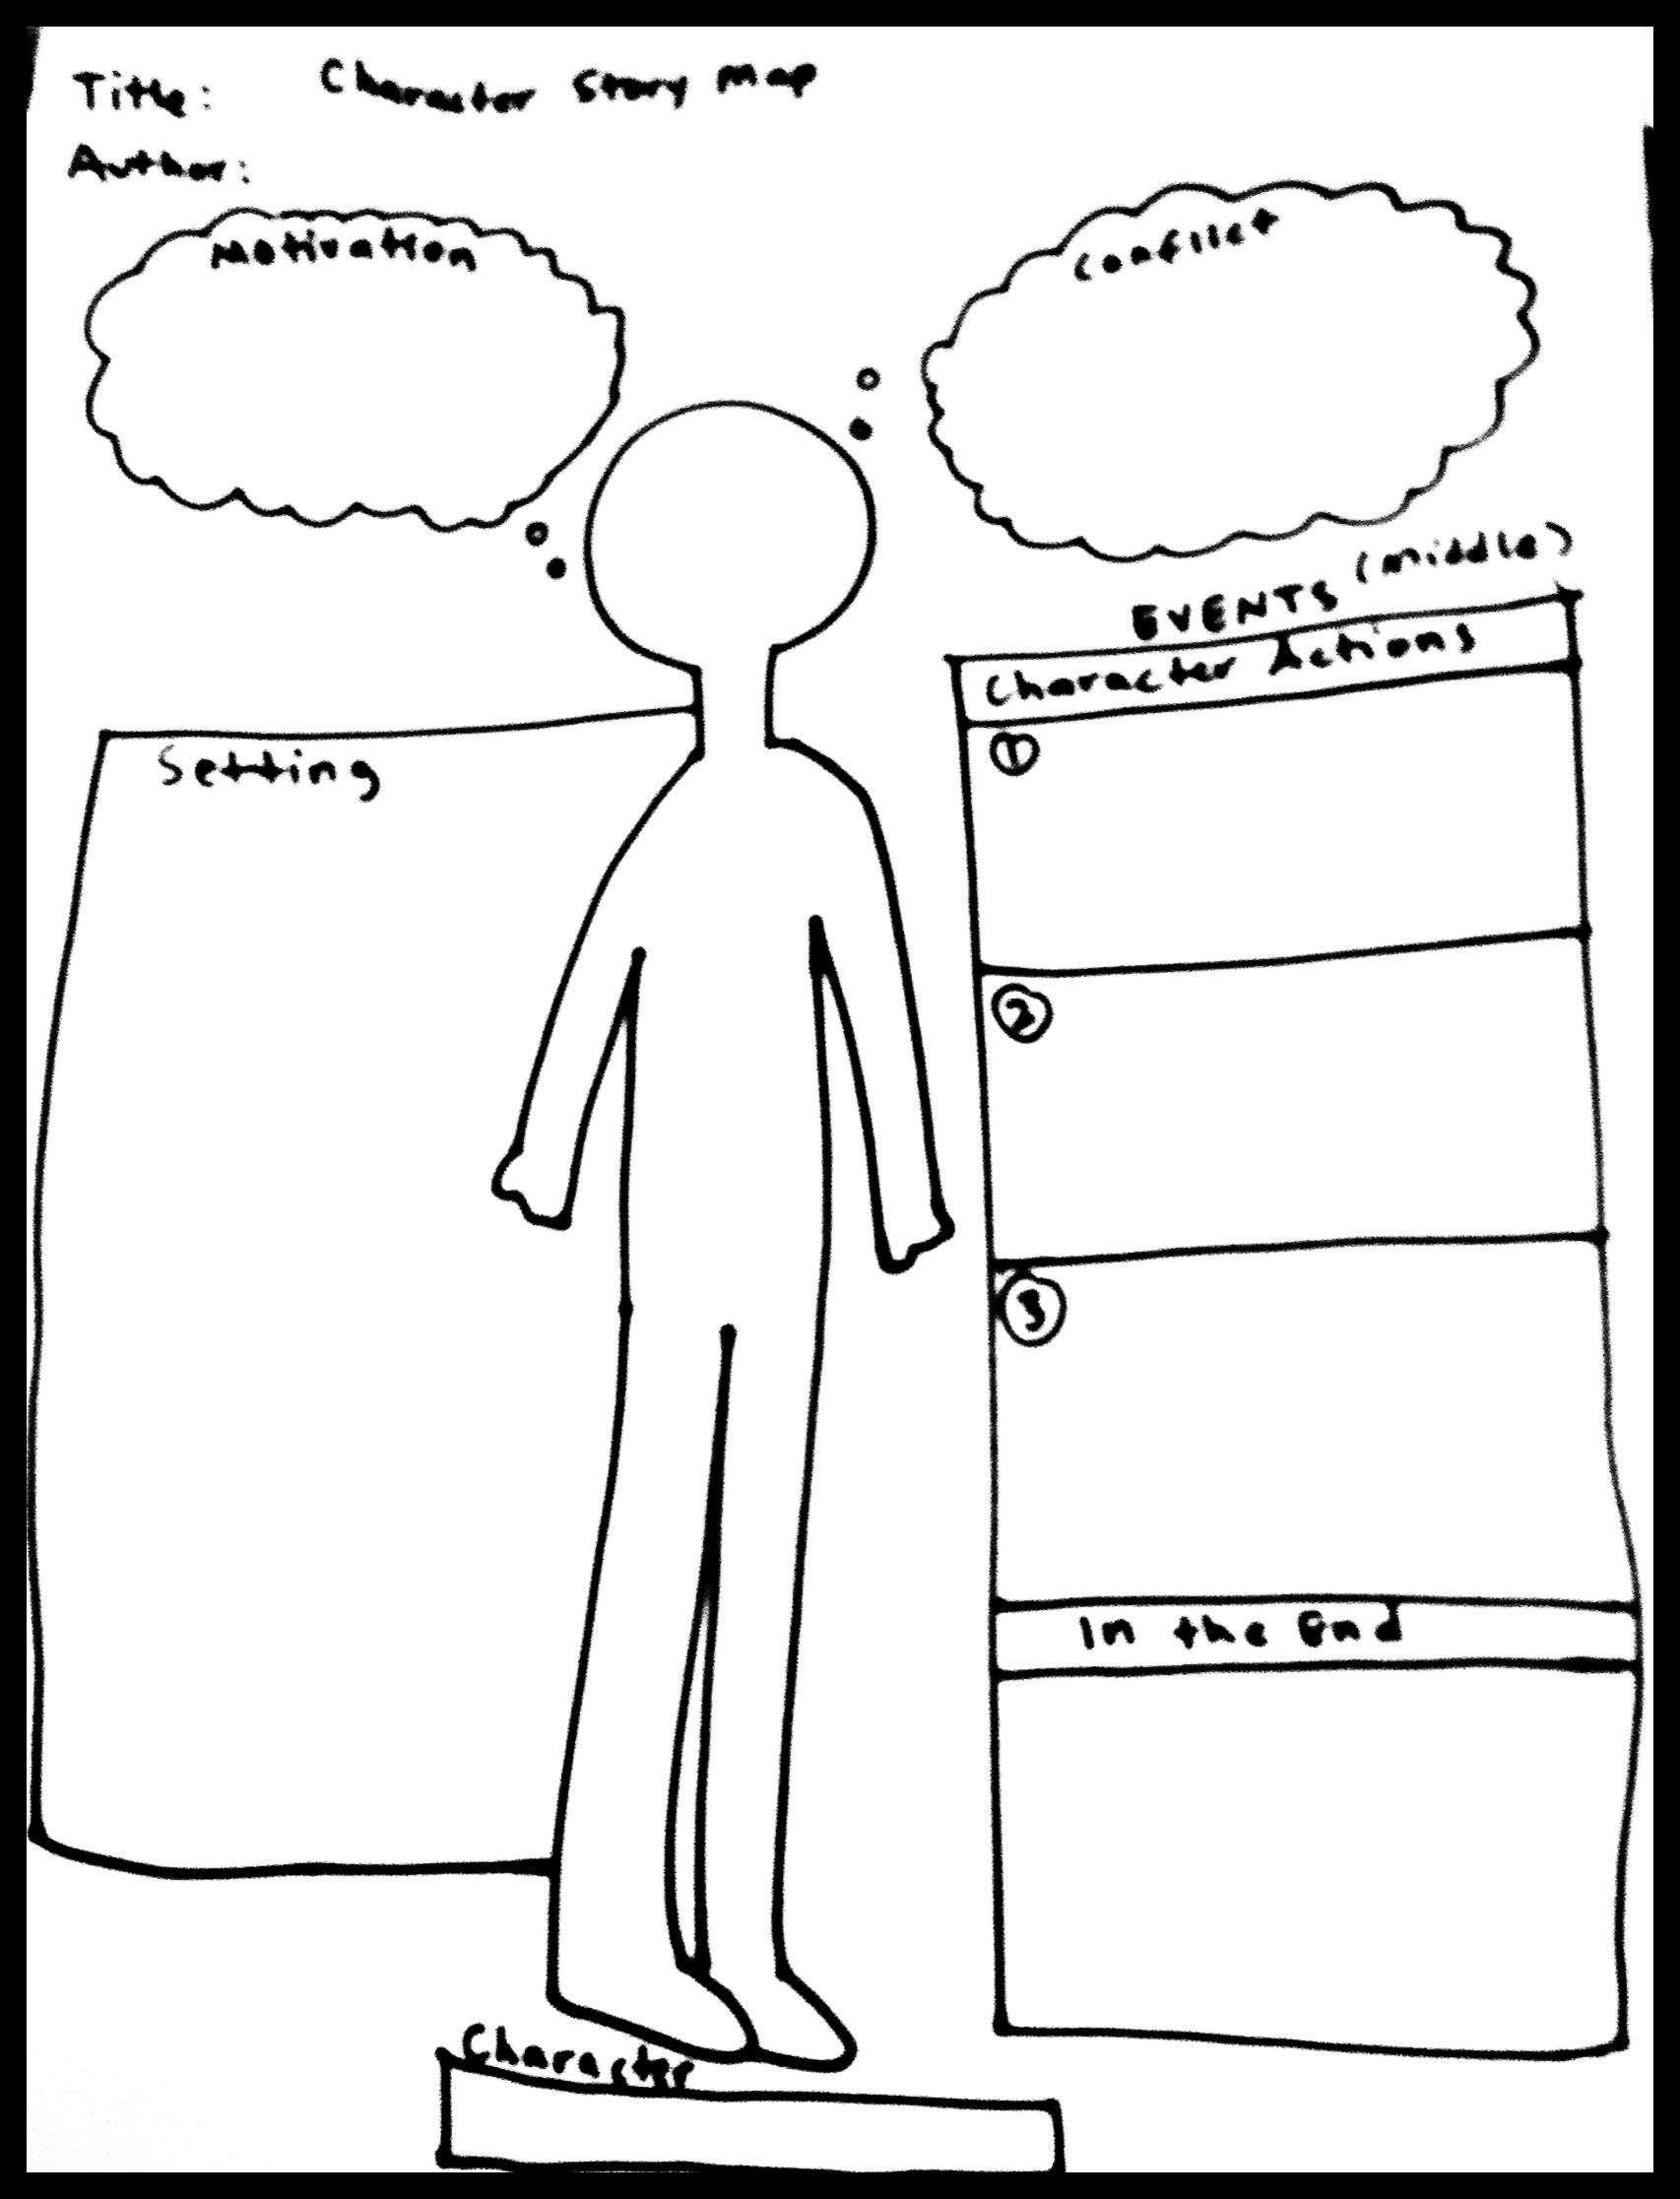 Creative narrative writing graphic organizer , Compare and